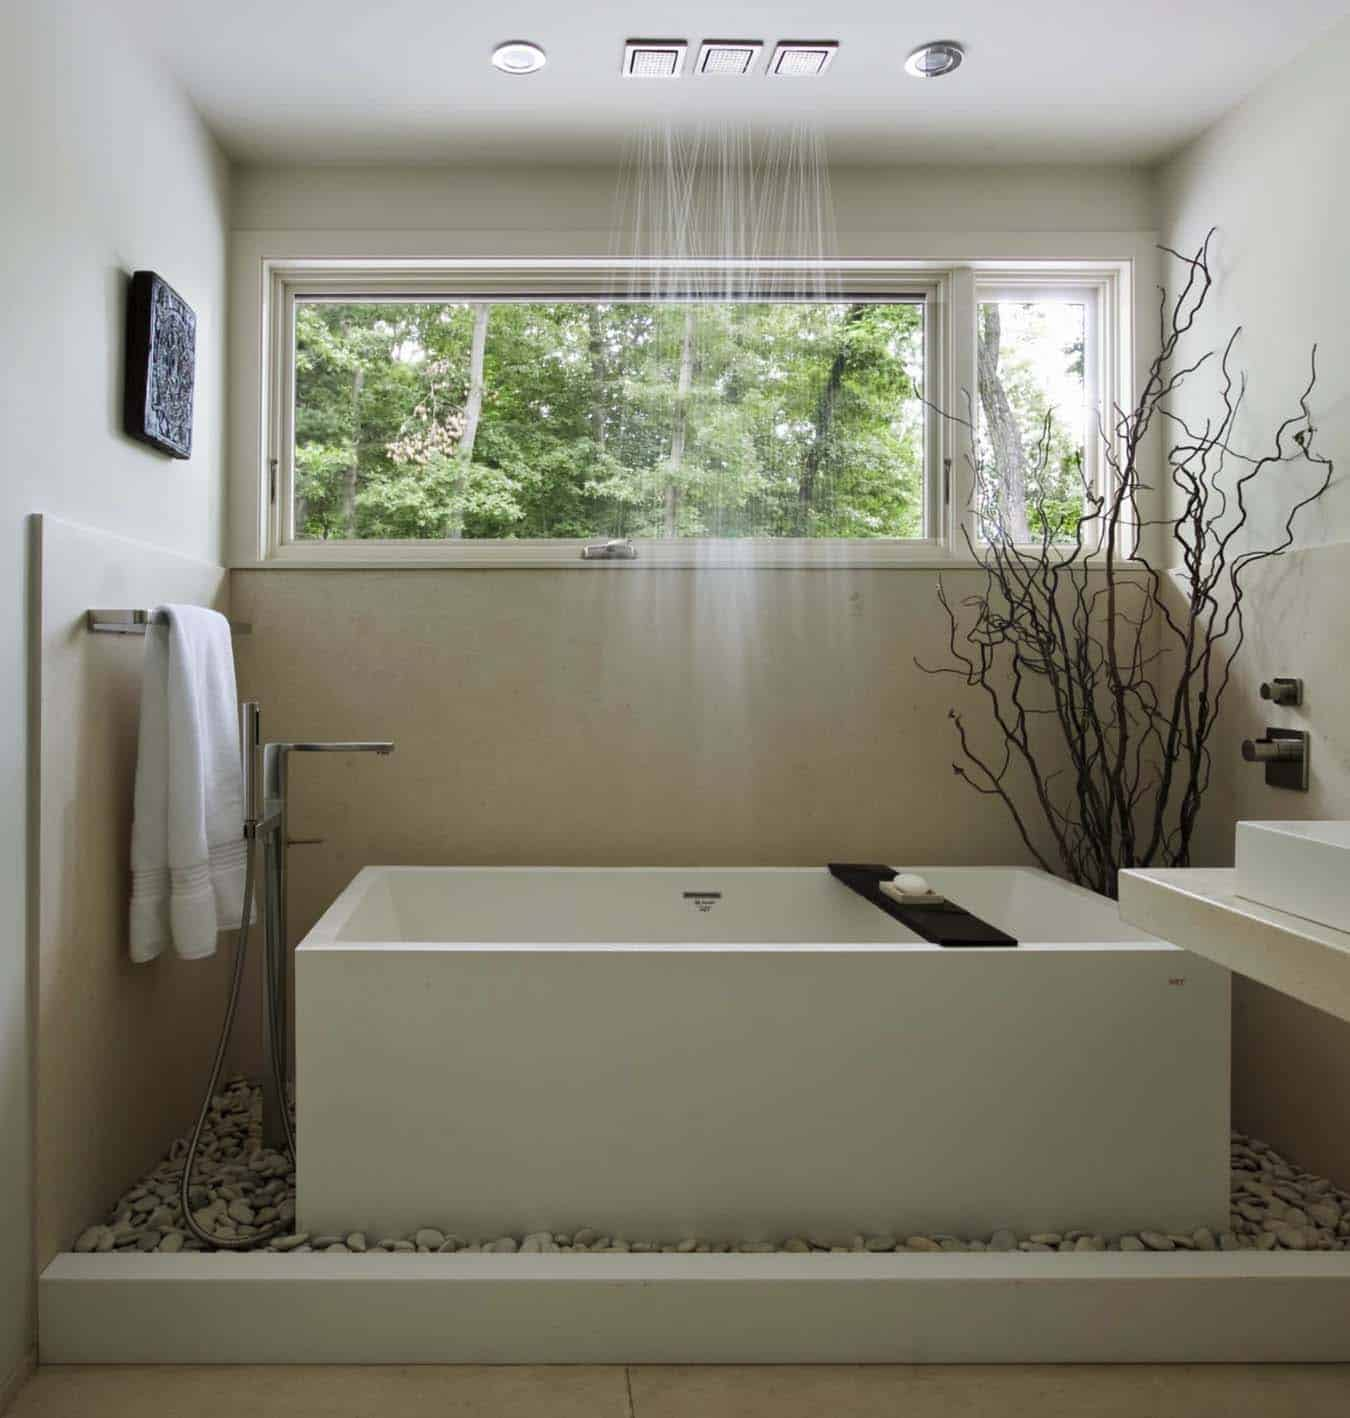 Freestanding-Tubs-Bathroom-Ideas-26-1 Kindesign